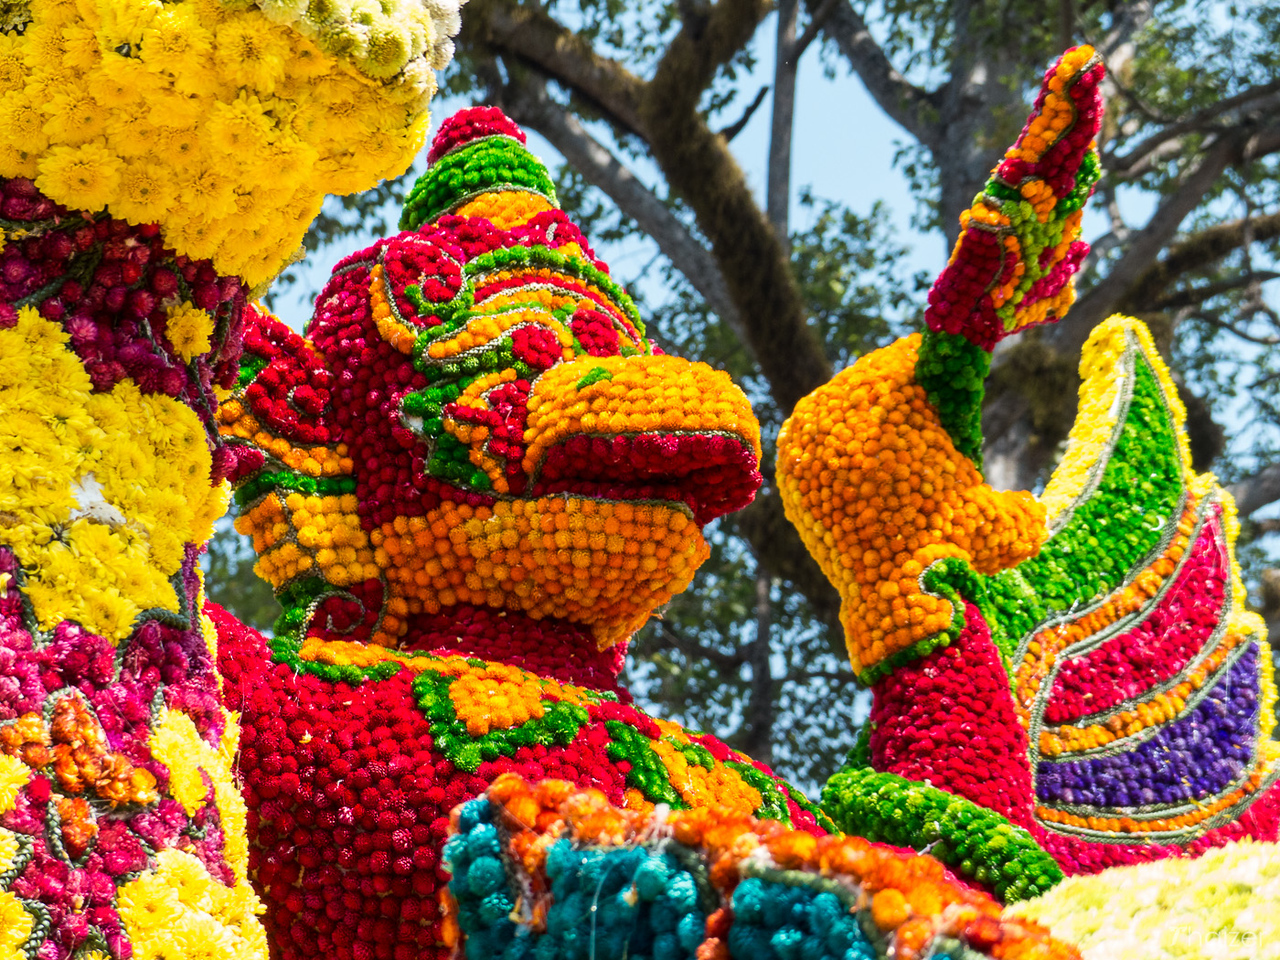 close-up view of the flowers and floats